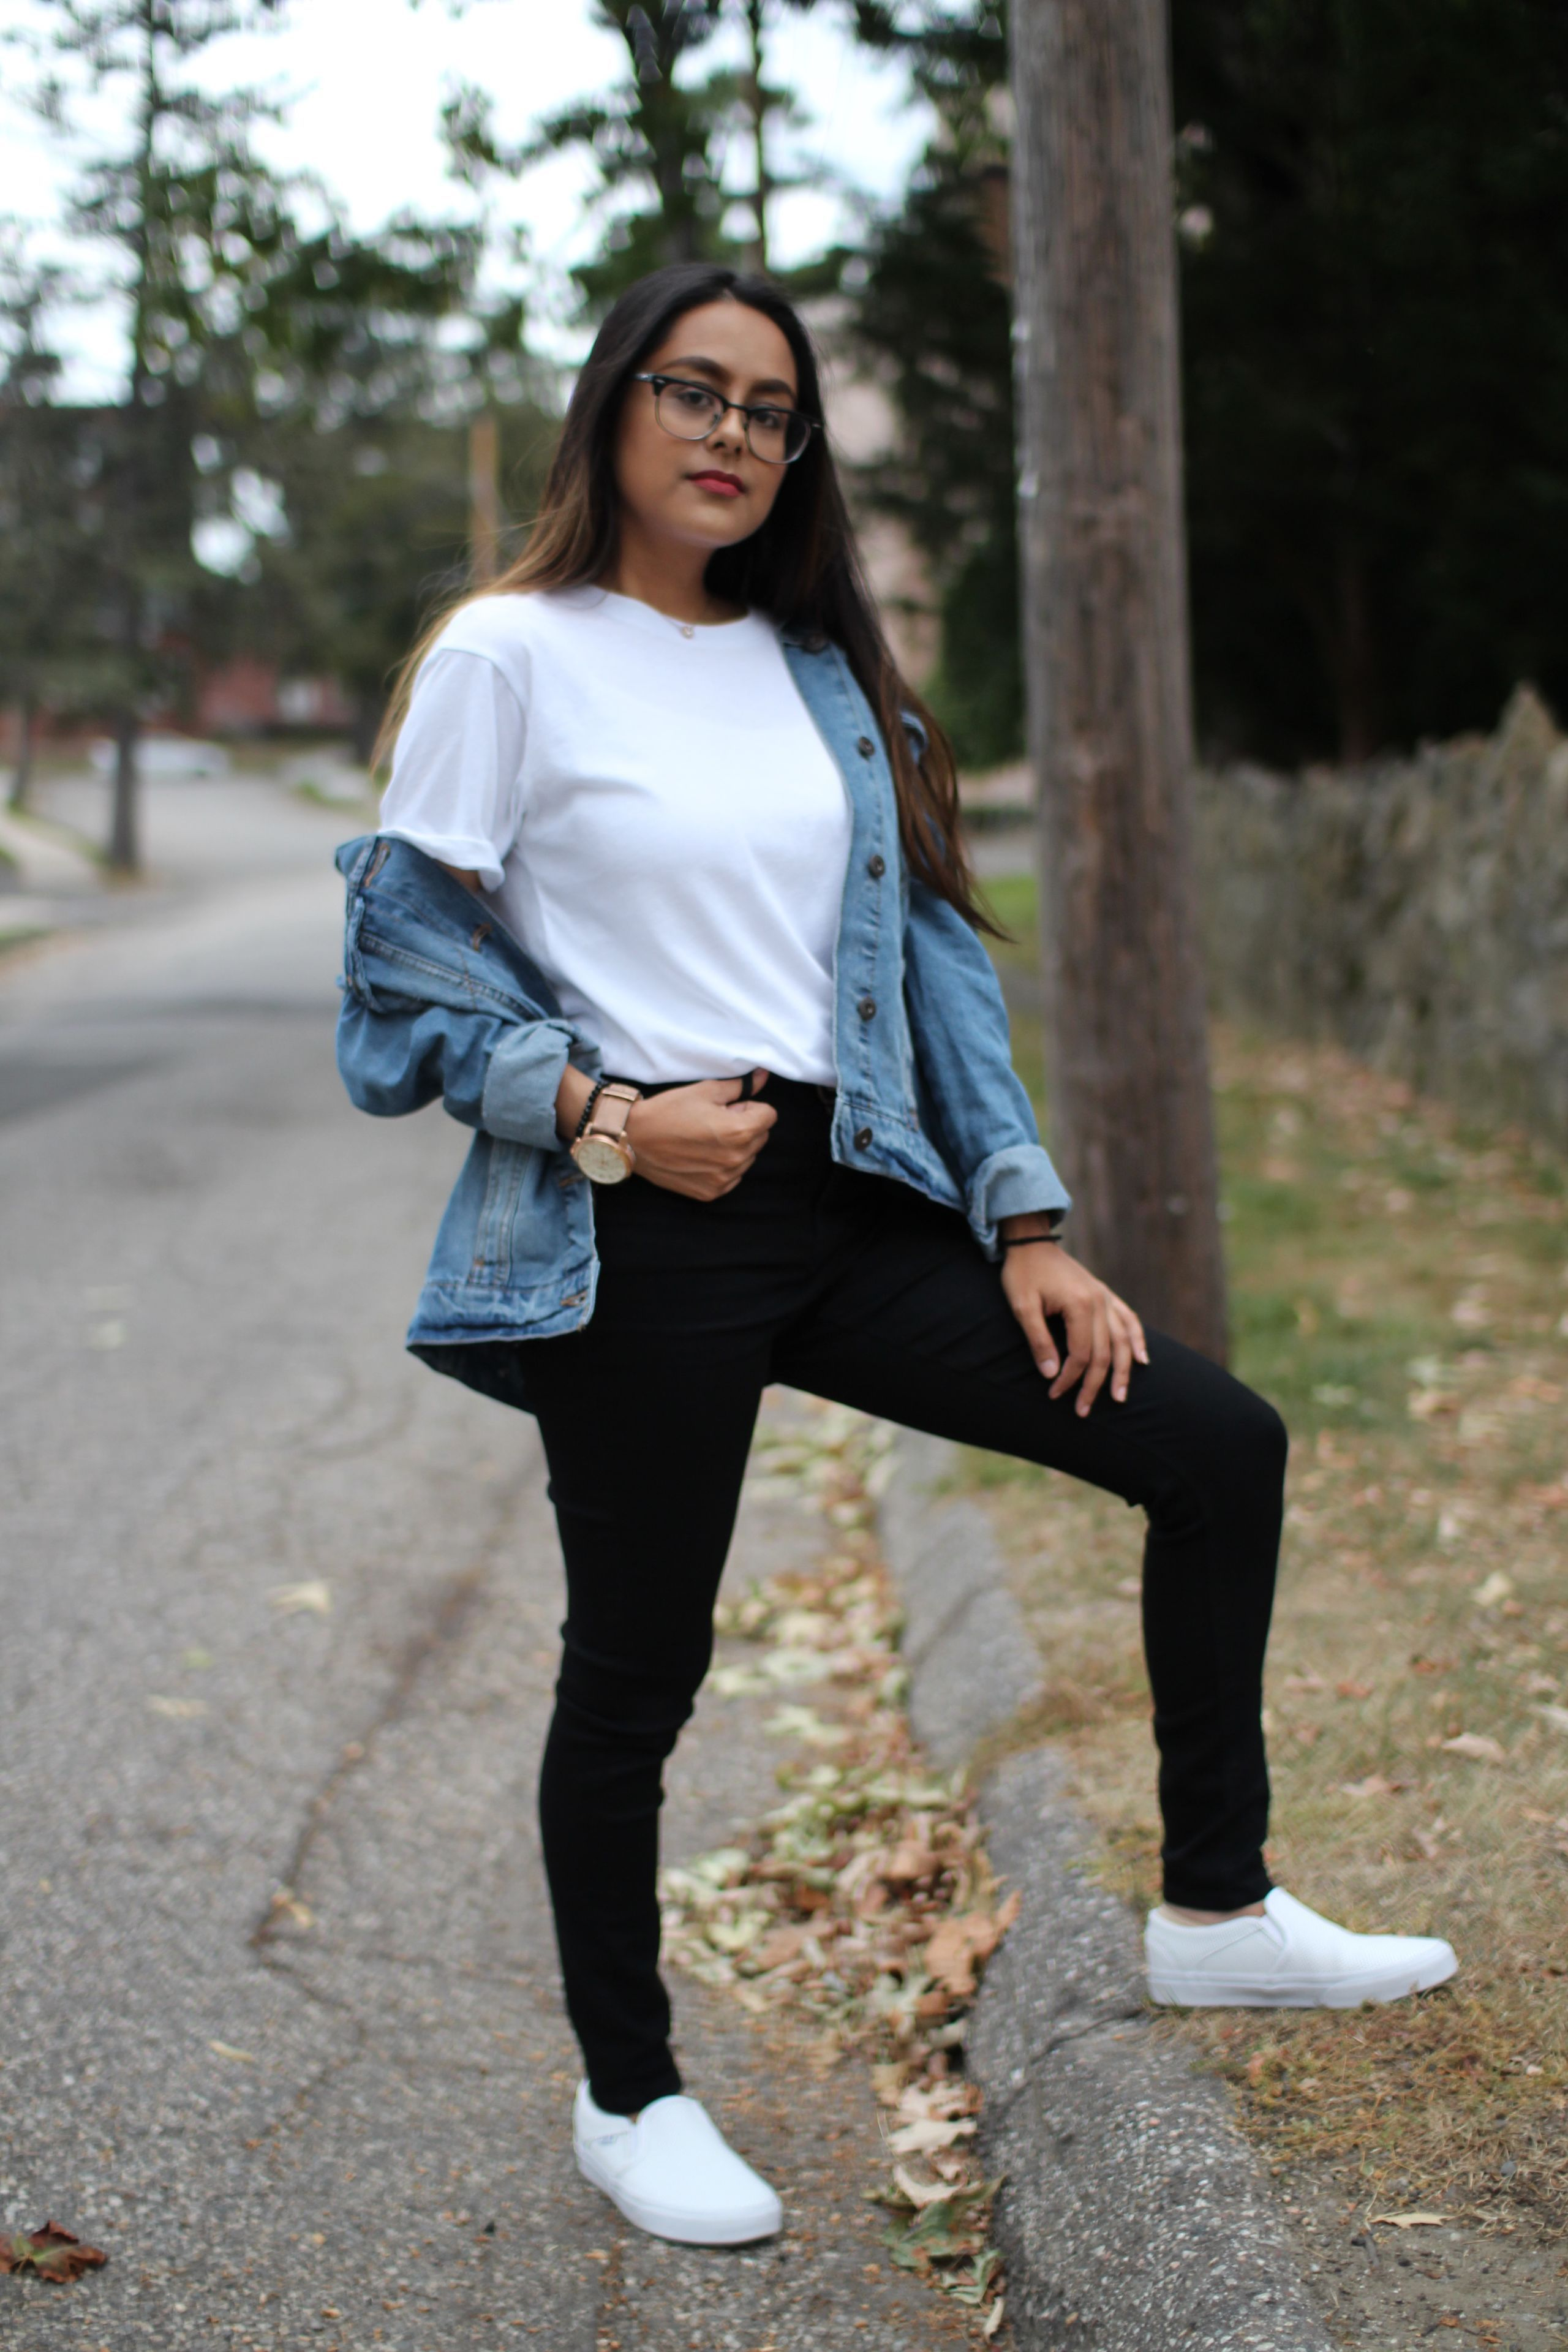 College Student At University Of Bridgeport Rocks Black Pants A White Tee An Oversized De Trendy Fall Outfits Embroidered Jacket Outfit Outfits With Leggings [ 3840 x 2560 Pixel ]